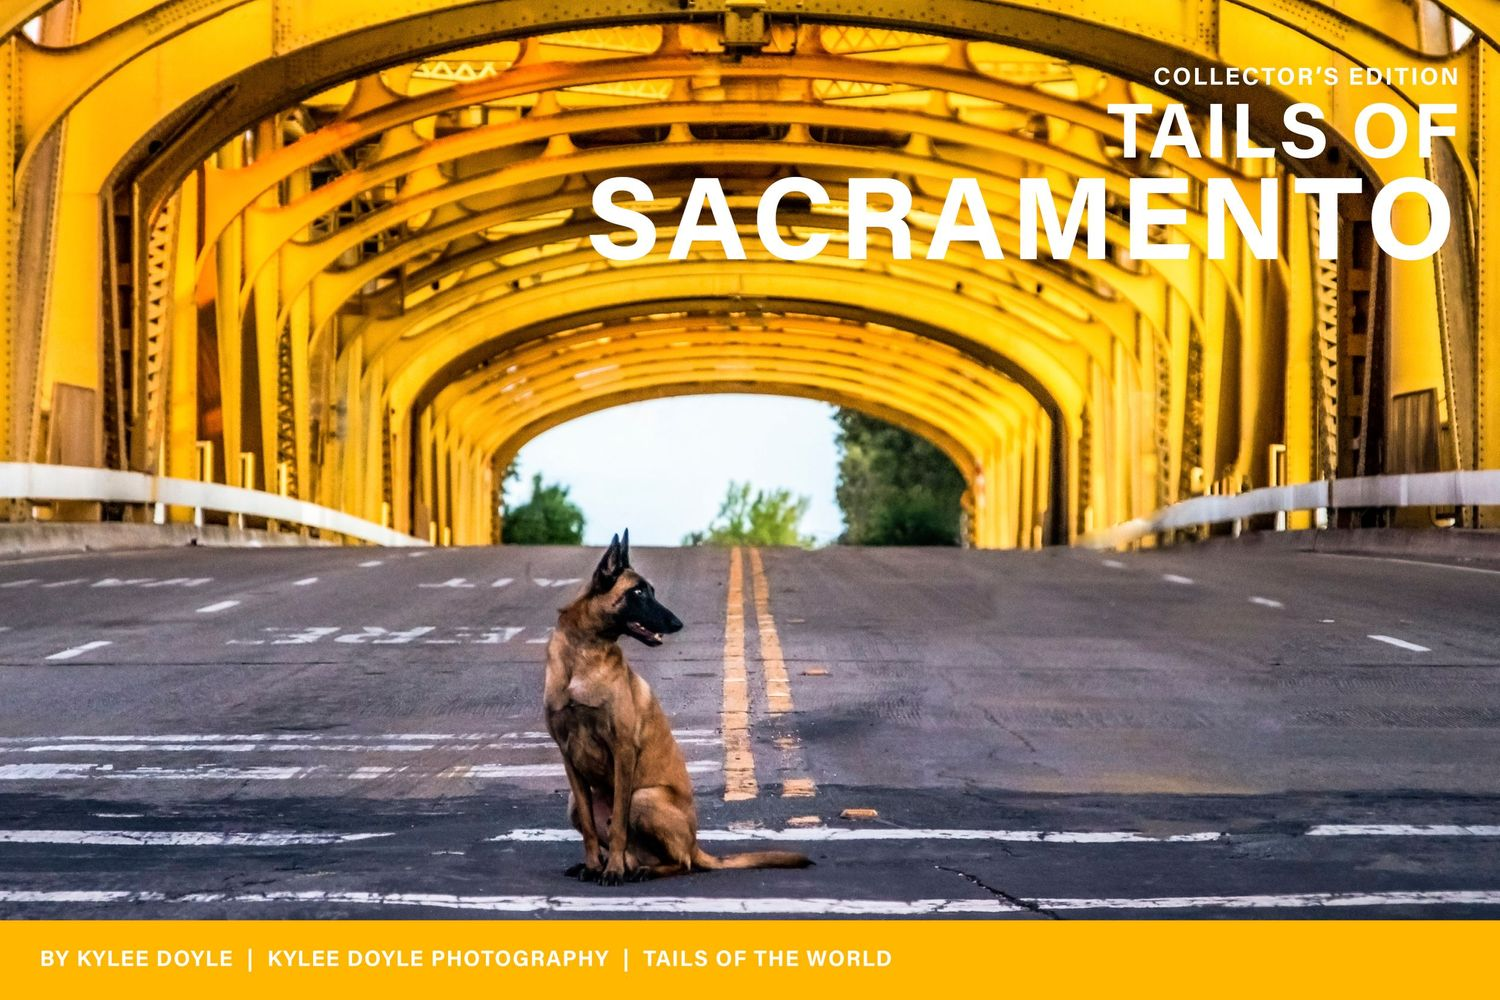 A Belgian Malinois dog sitting on the road in front of Tower Bridge in Sacramento, California.